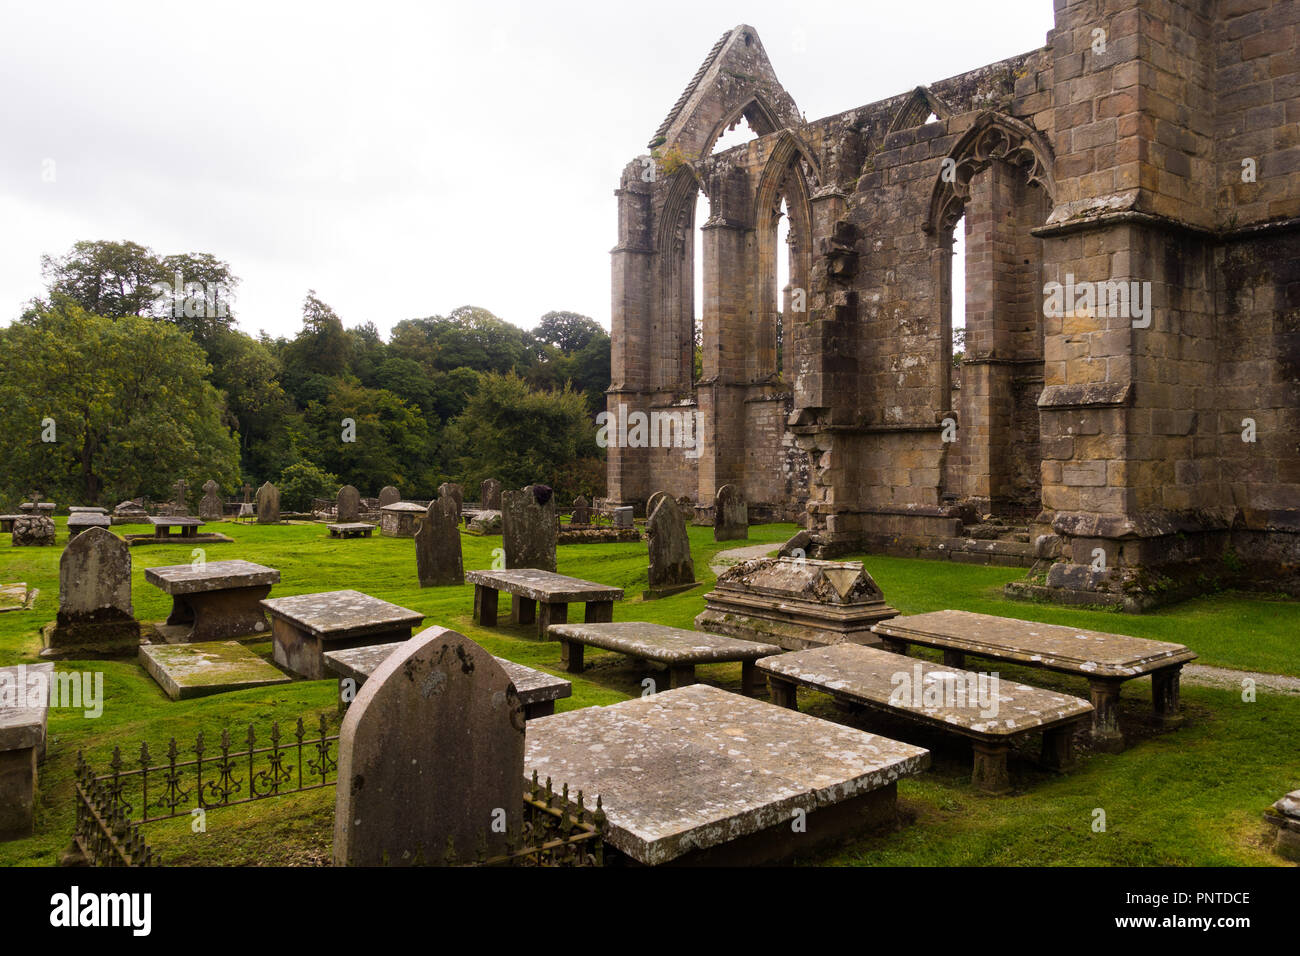 Table top tombs at Bolton Abbey in Wharfedale, Yorkshire, England - Stock Image